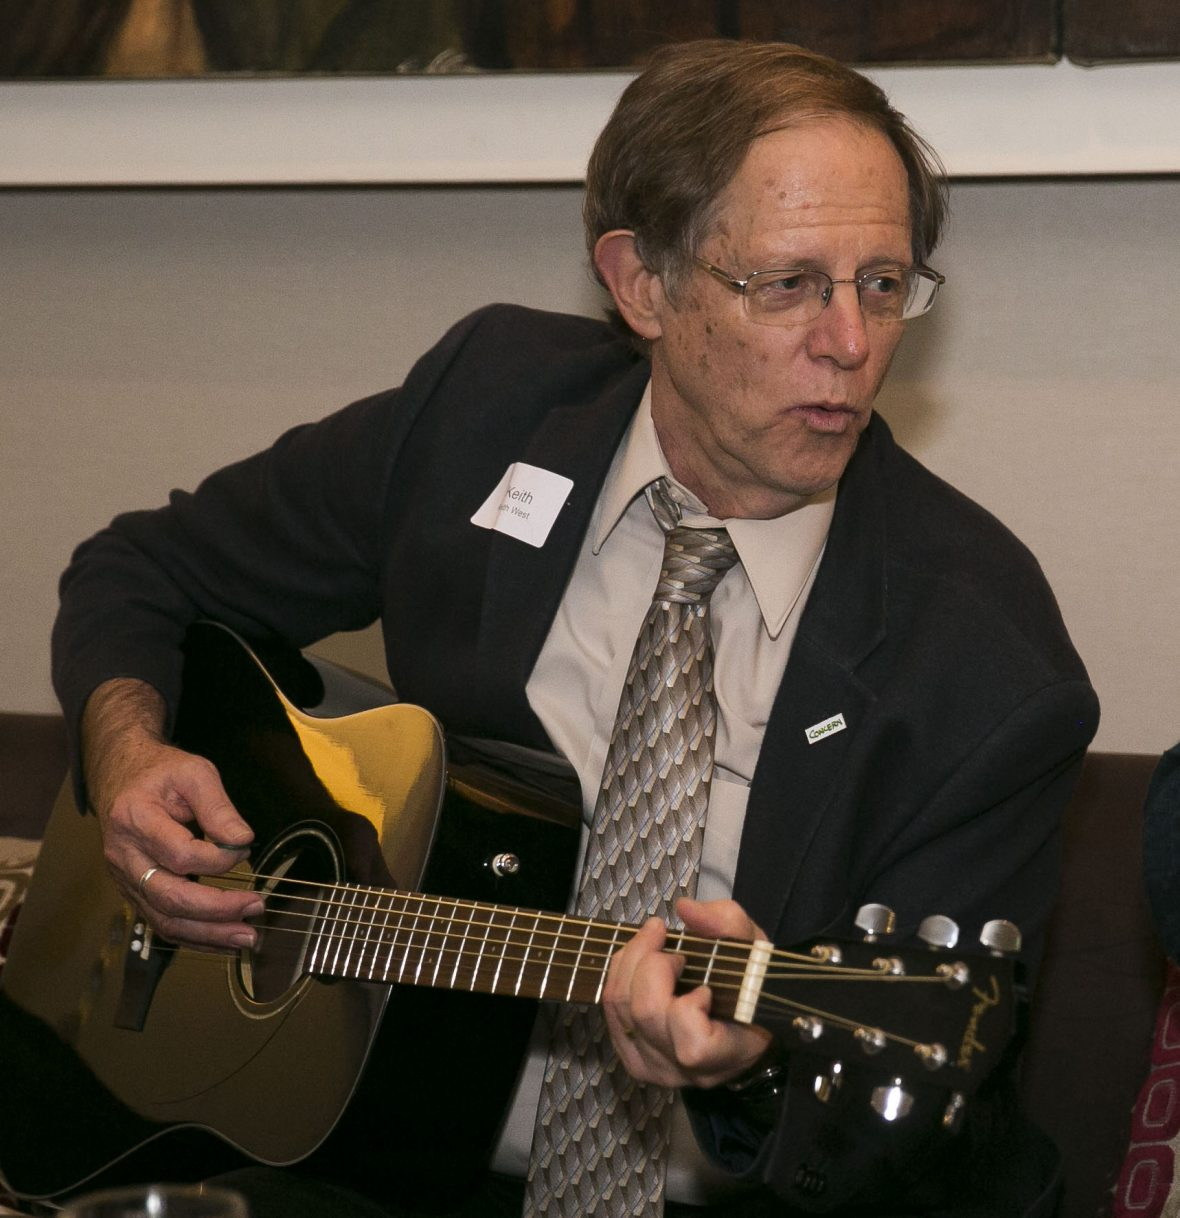 Professor Keith West playing for ex-colleagues at a Concern reunion in Ireland in 2018.